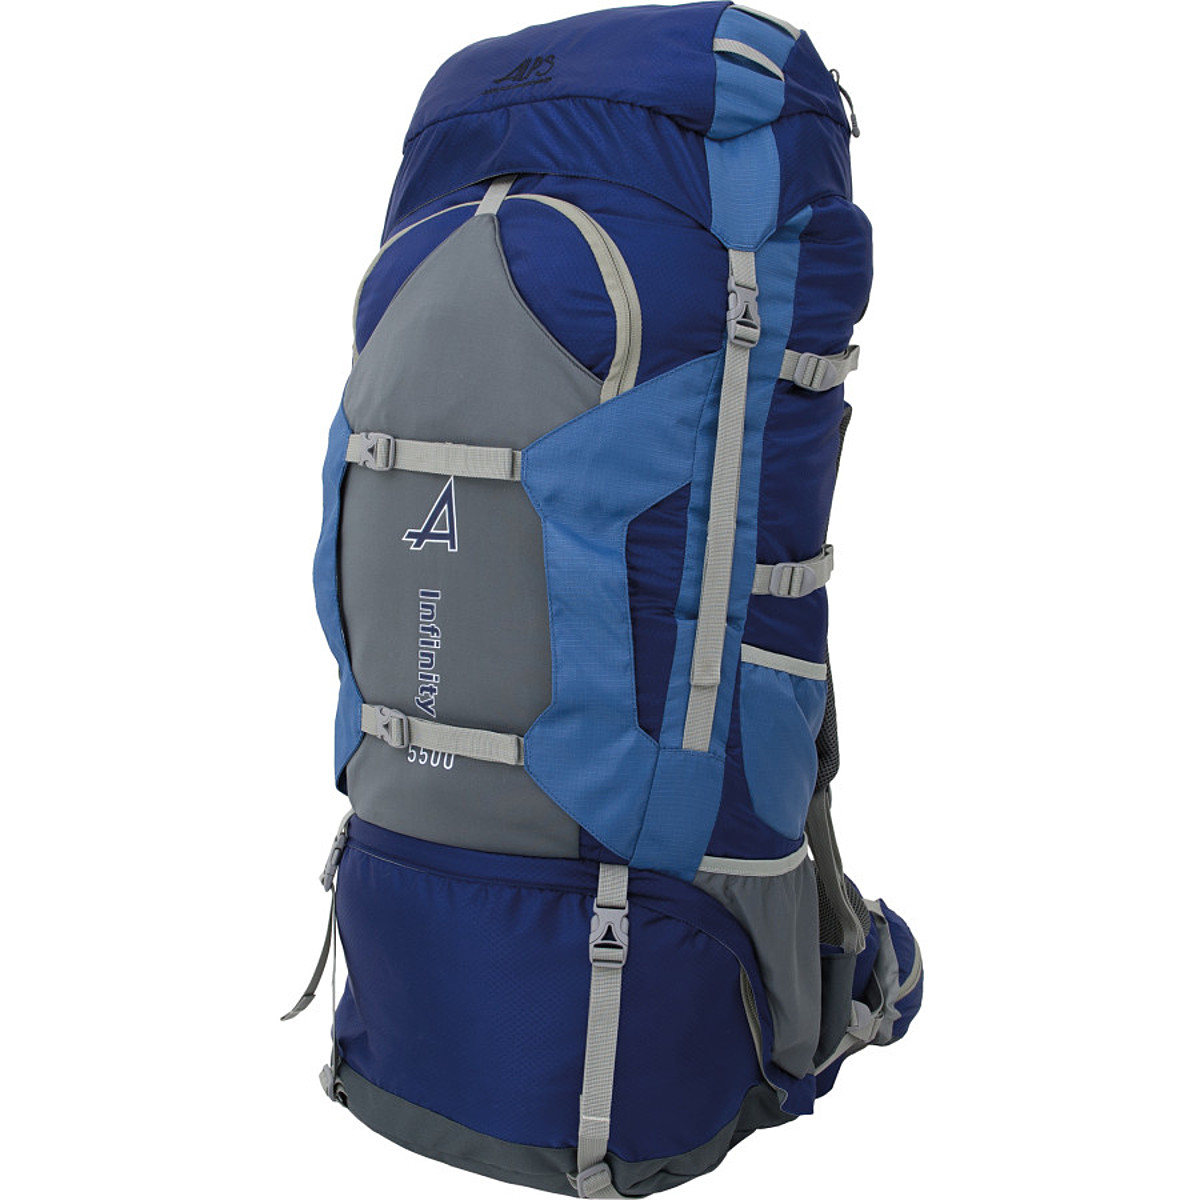 ALPS Mountaineering Infinity 5500